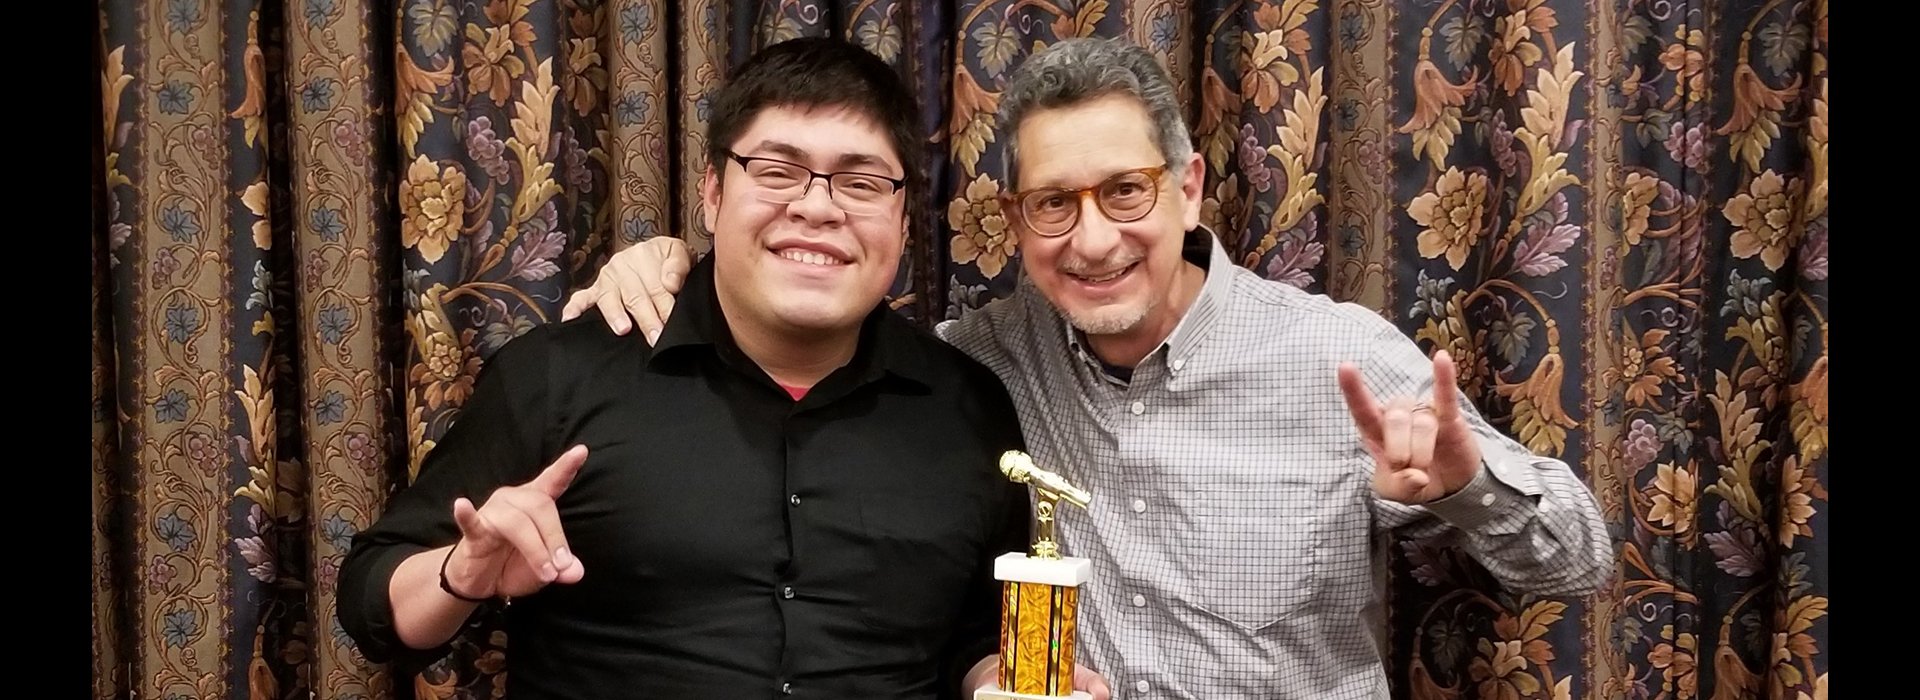 Former Coyote Radio student wins international and regional audio production awards